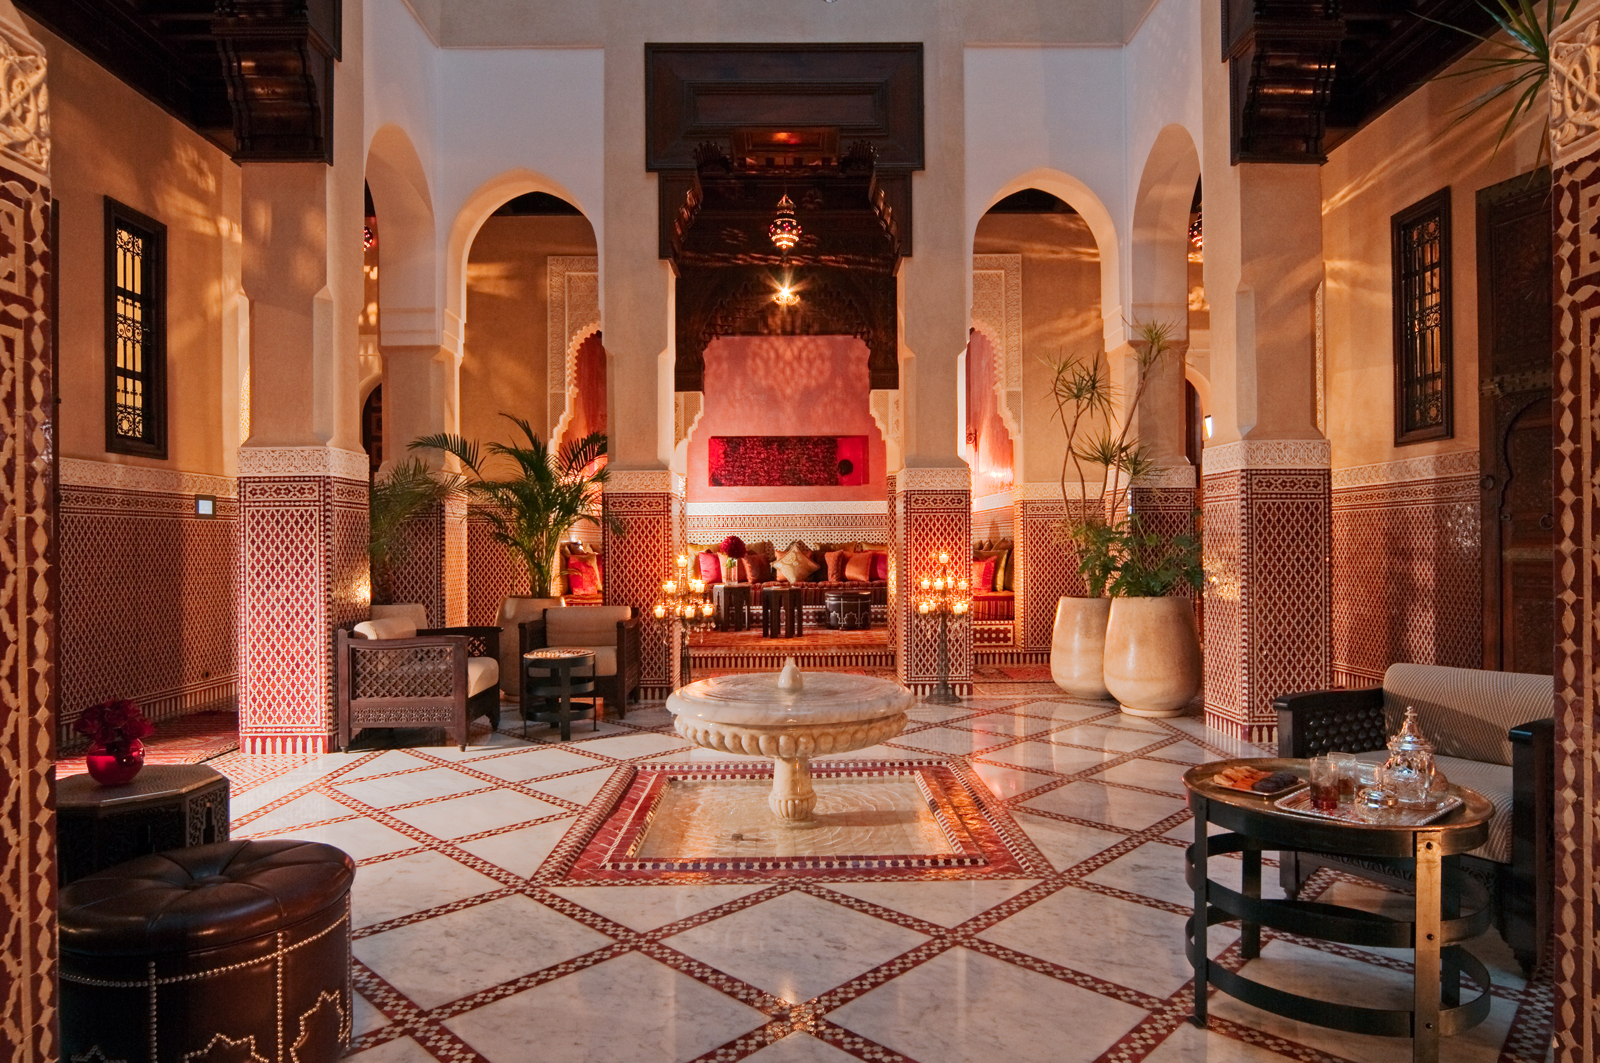 Royal mansour marrakesh deluxe escapesdeluxe escapes for Hotel design marrakech